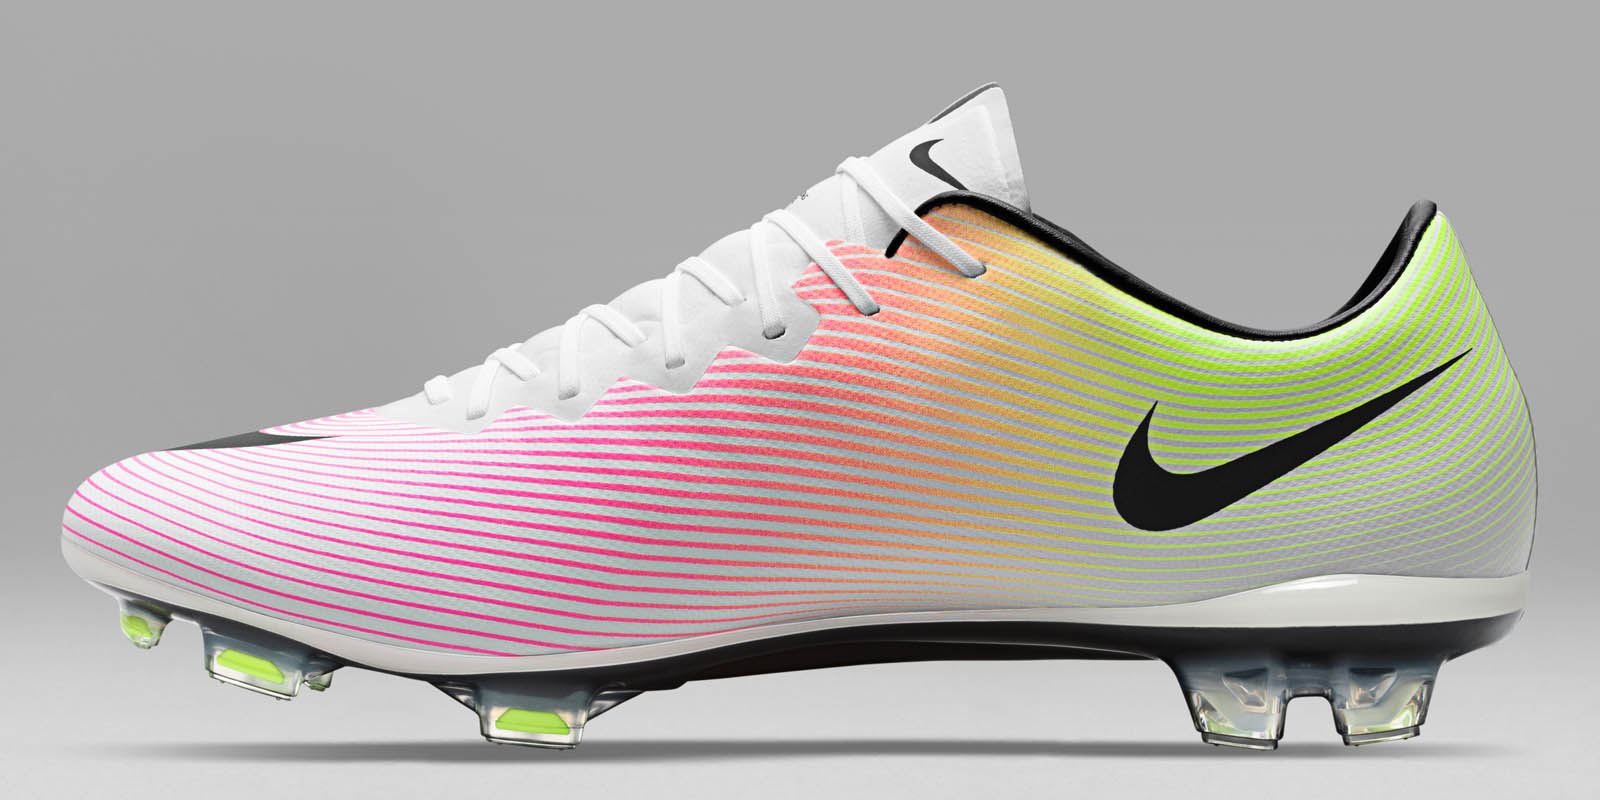 nike mercurial vapor x 2016 radiant reveal boots released. Black Bedroom Furniture Sets. Home Design Ideas